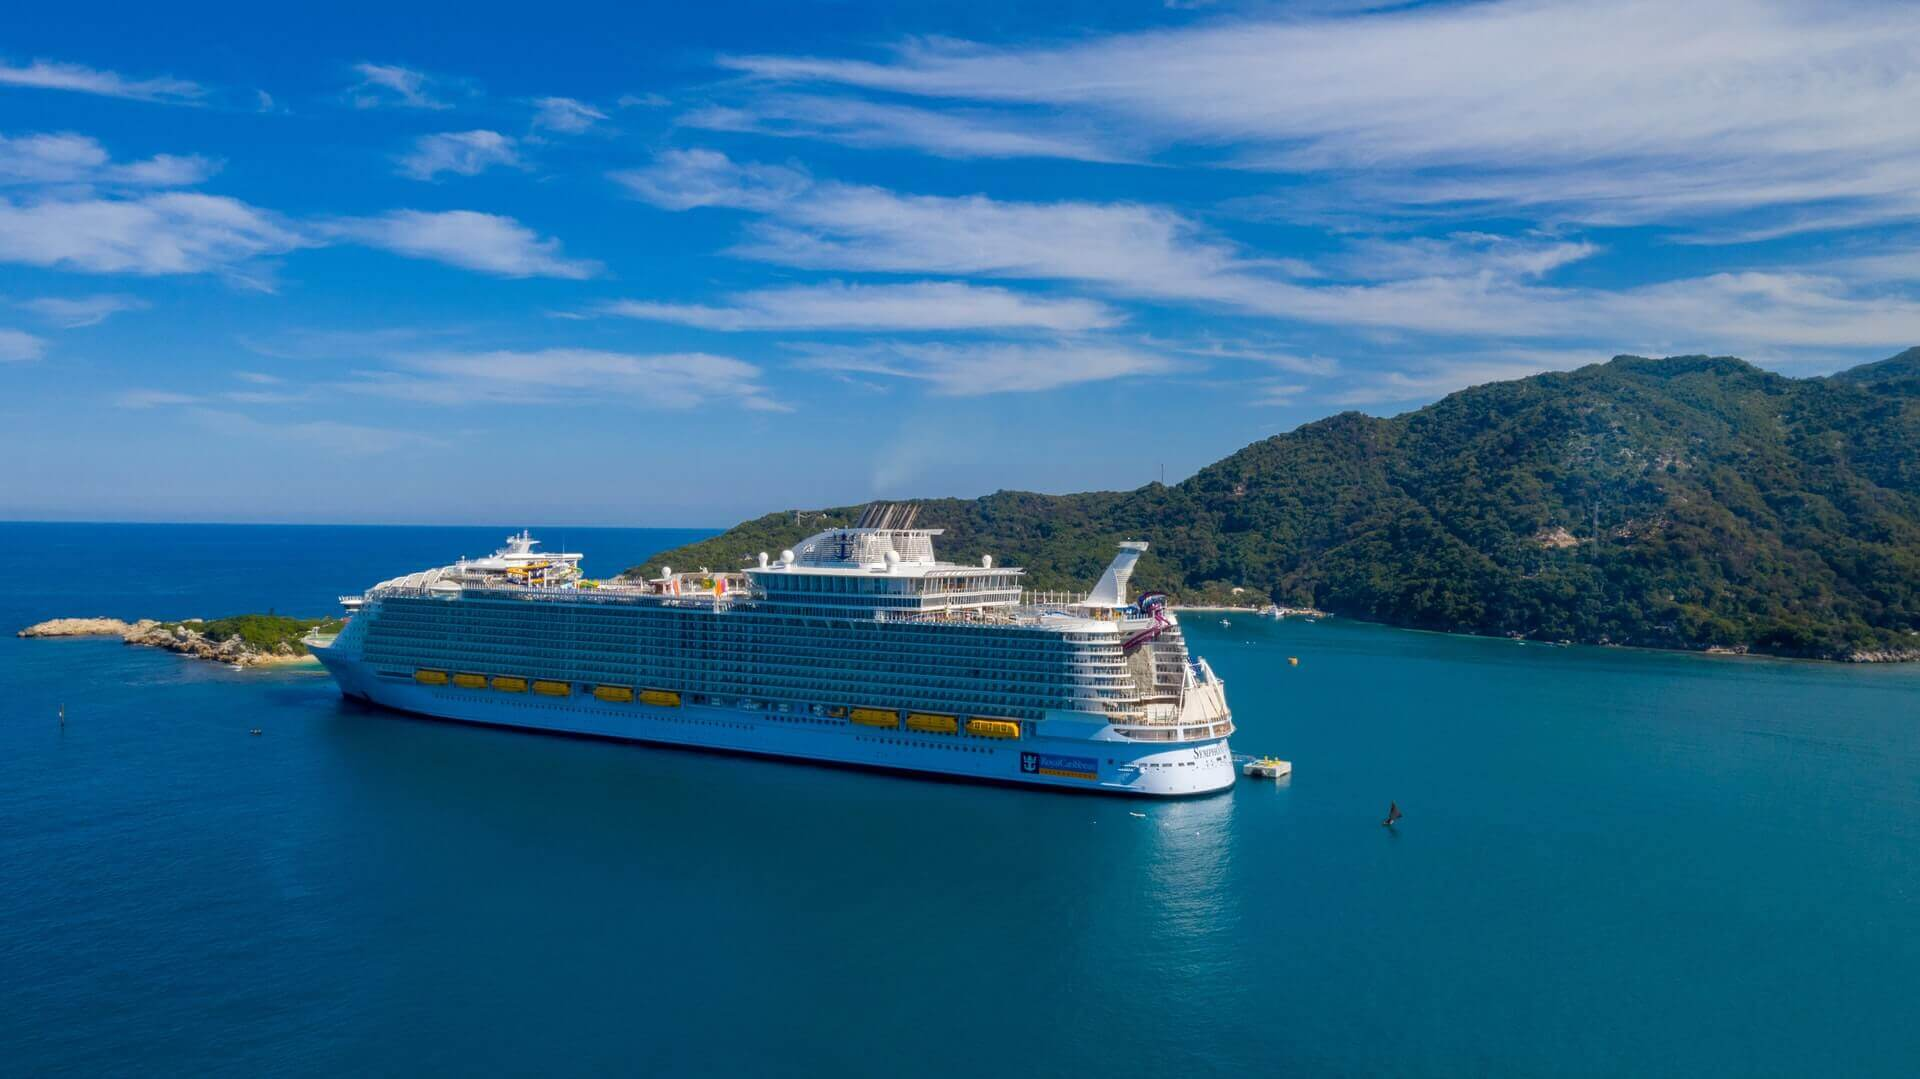 Royal Carribean refunds: Almost half of customers request cash back instead of future credit